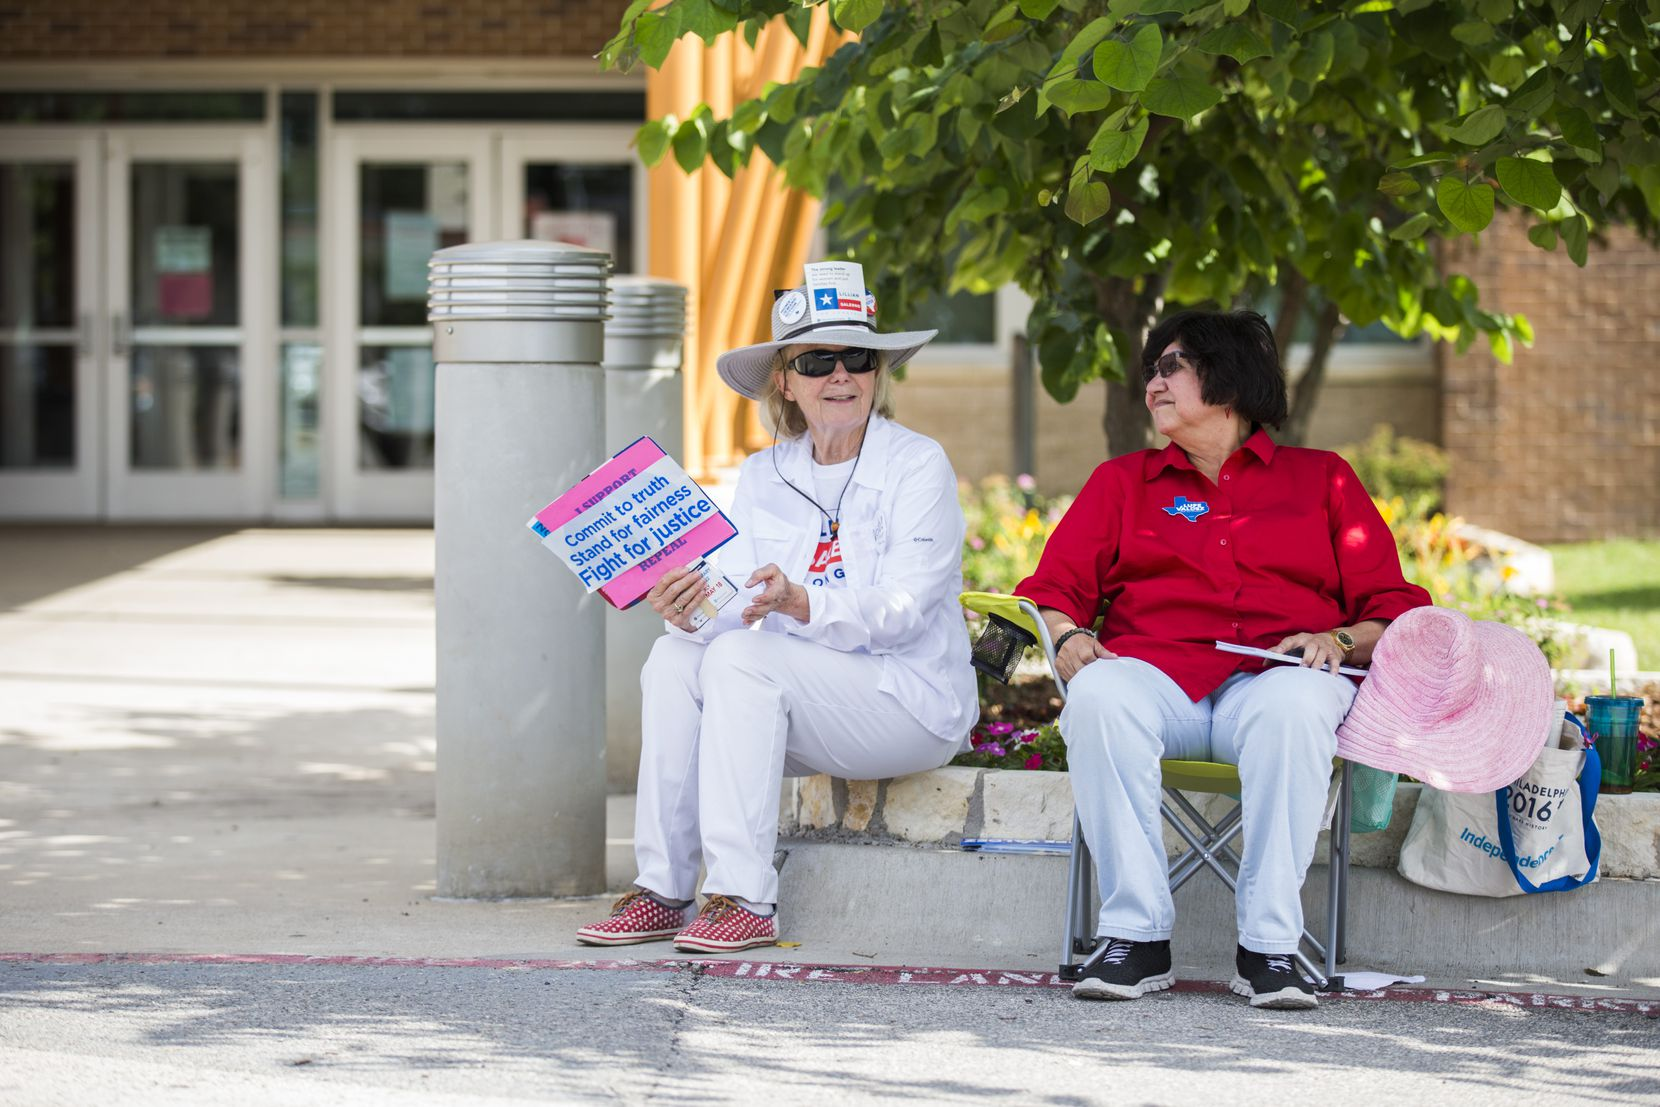 Gubernatorial candidate and former Dallas County Sheriff Lupe Valdez, right, sits with supporter Katherine McGovern outside a primary runoff polling place at Walnut Hill Recreation Center in Dallas earlier on election day.